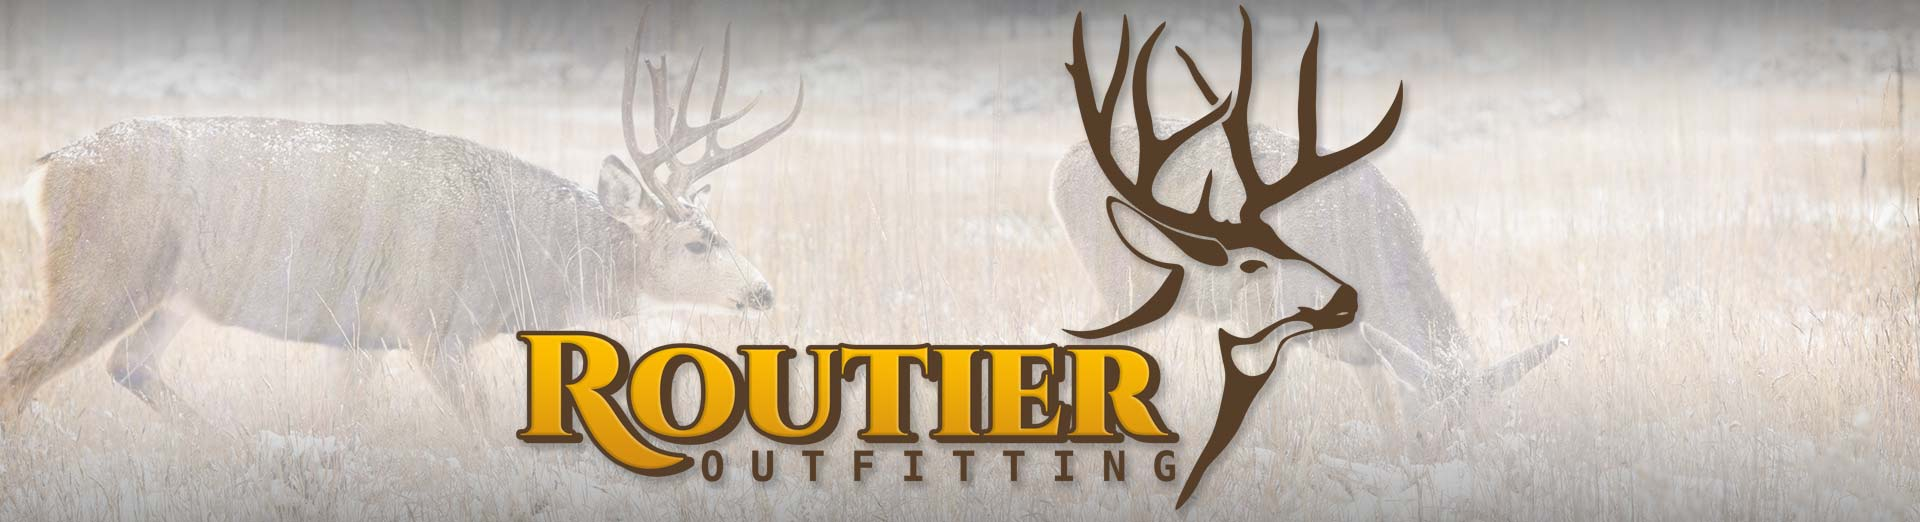 Link to Routier Outfitting